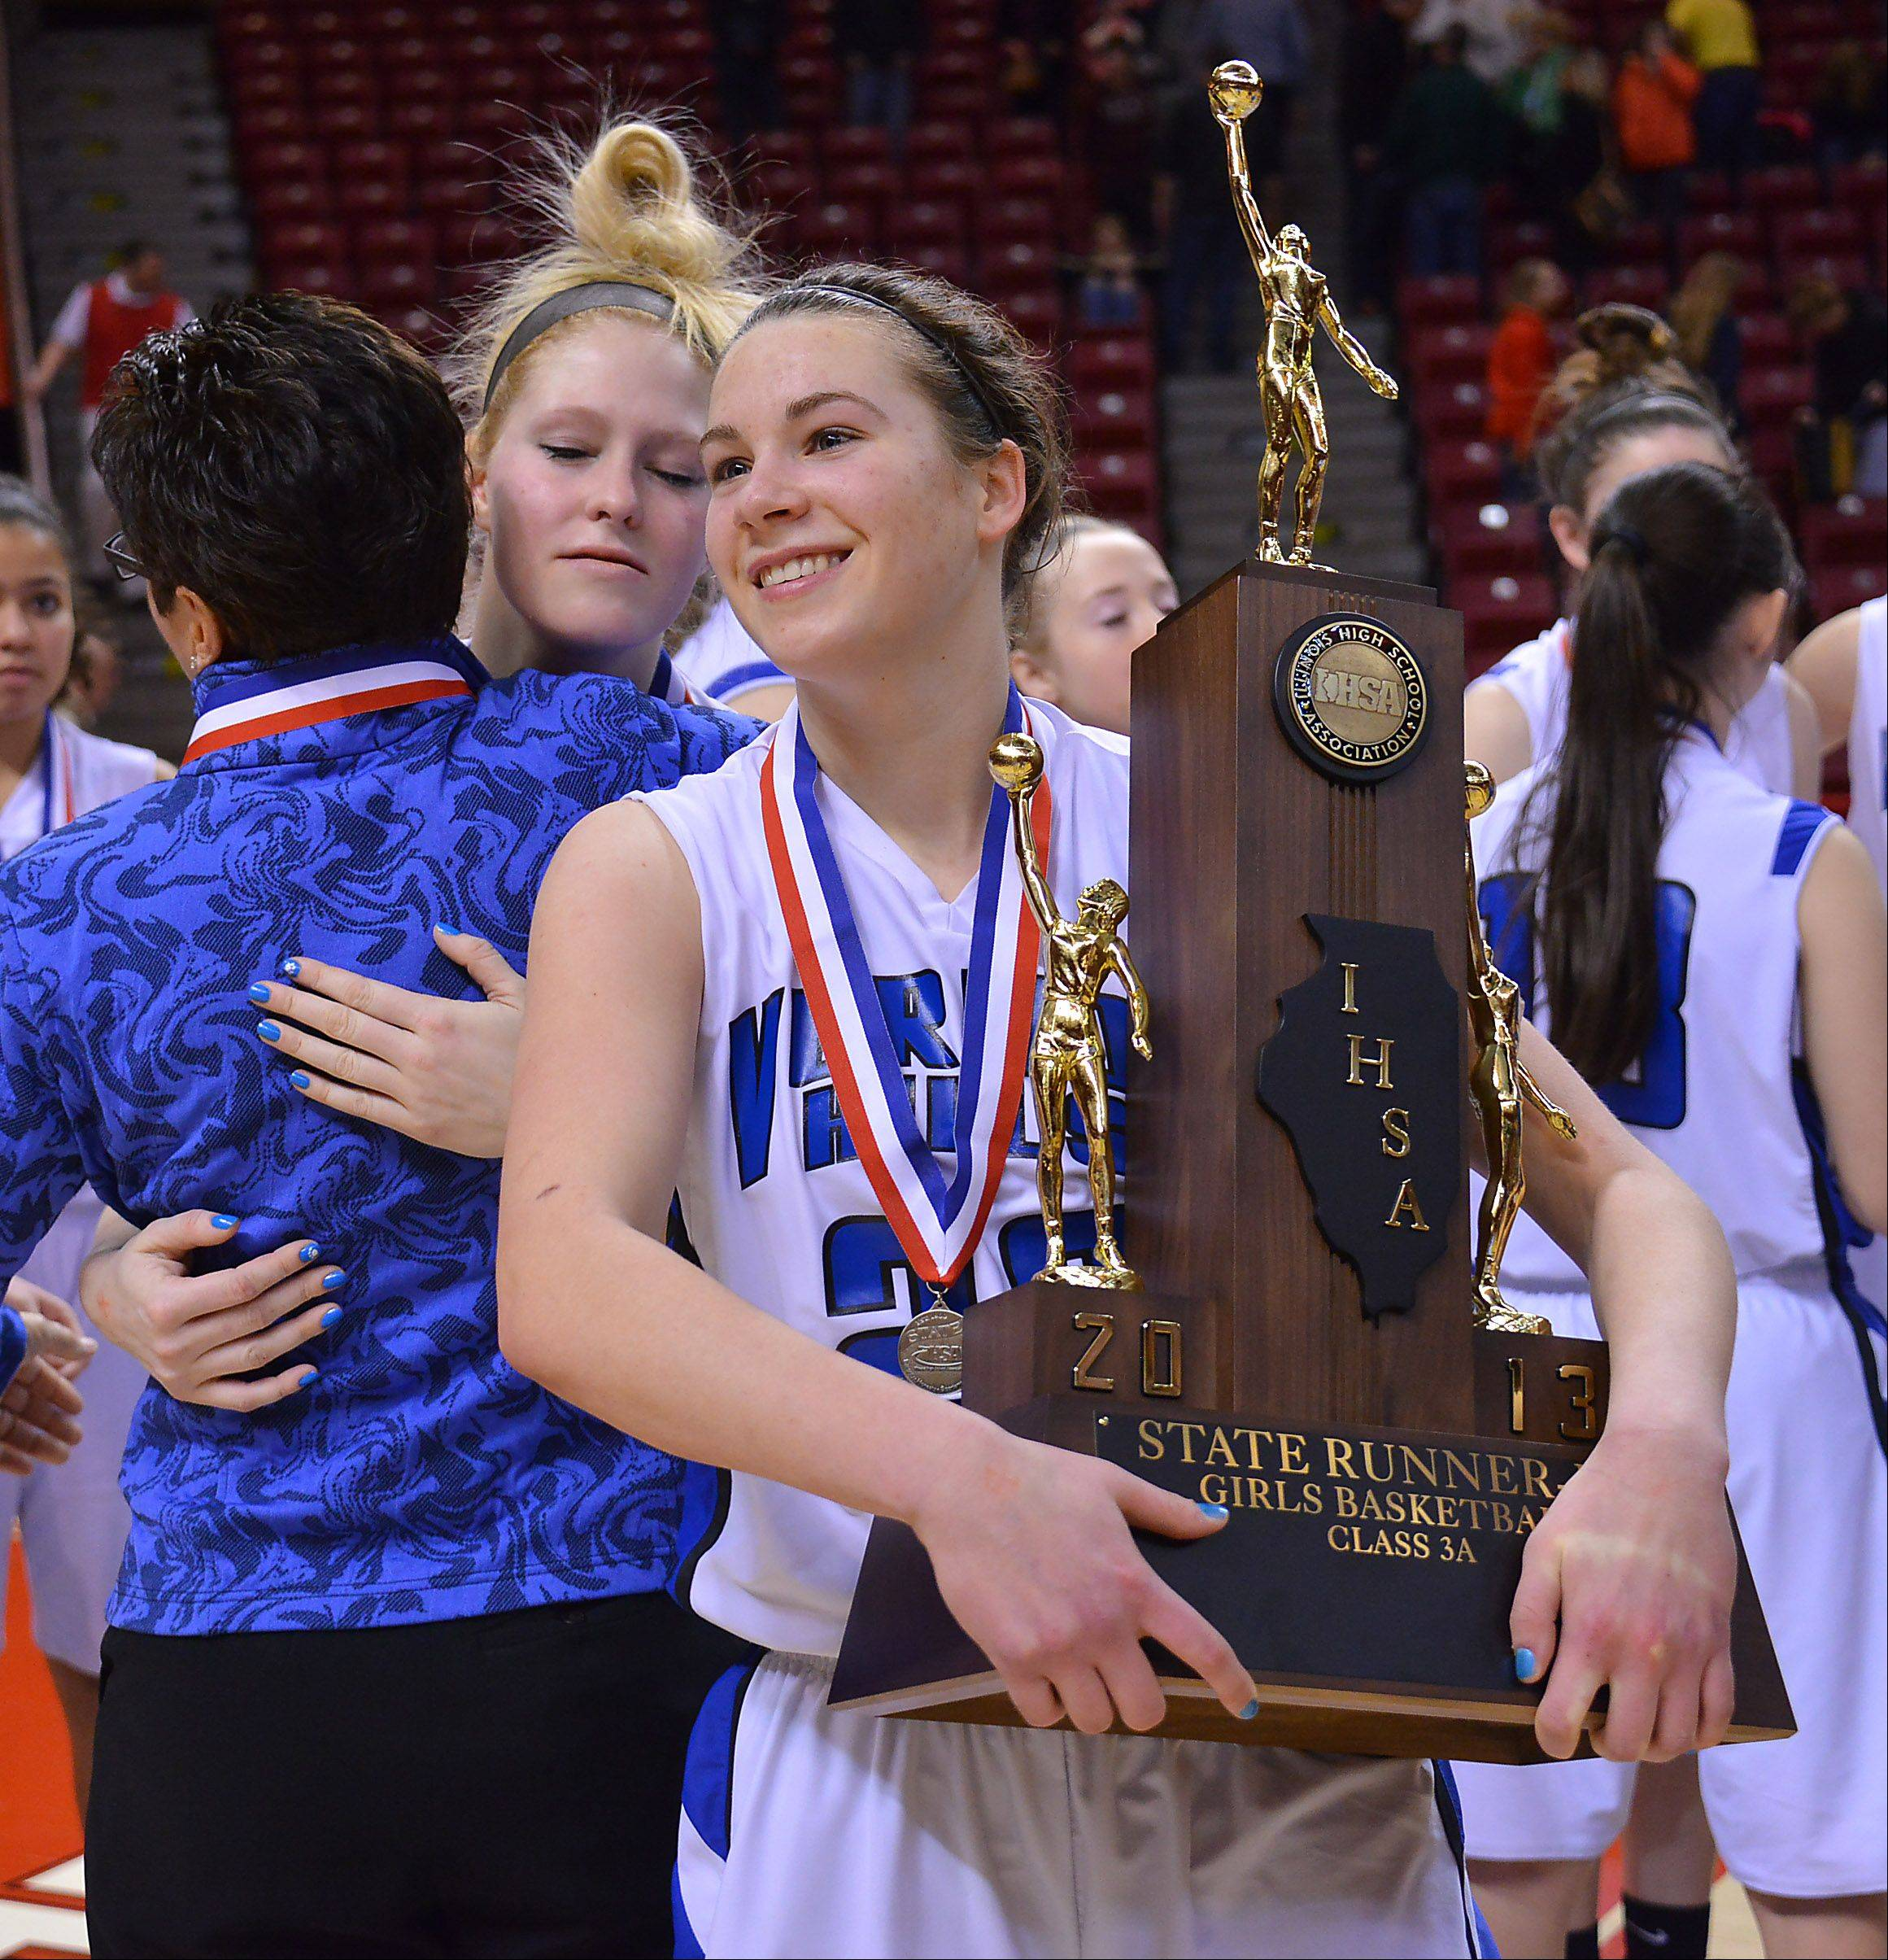 Vernon Hills Brie Bahlmann is all smiles as she holds the second place trophy after losing to Quincy Notre Dame Notre Dame at the Class 3A state girls basketball championship game in Normal on Saturday.